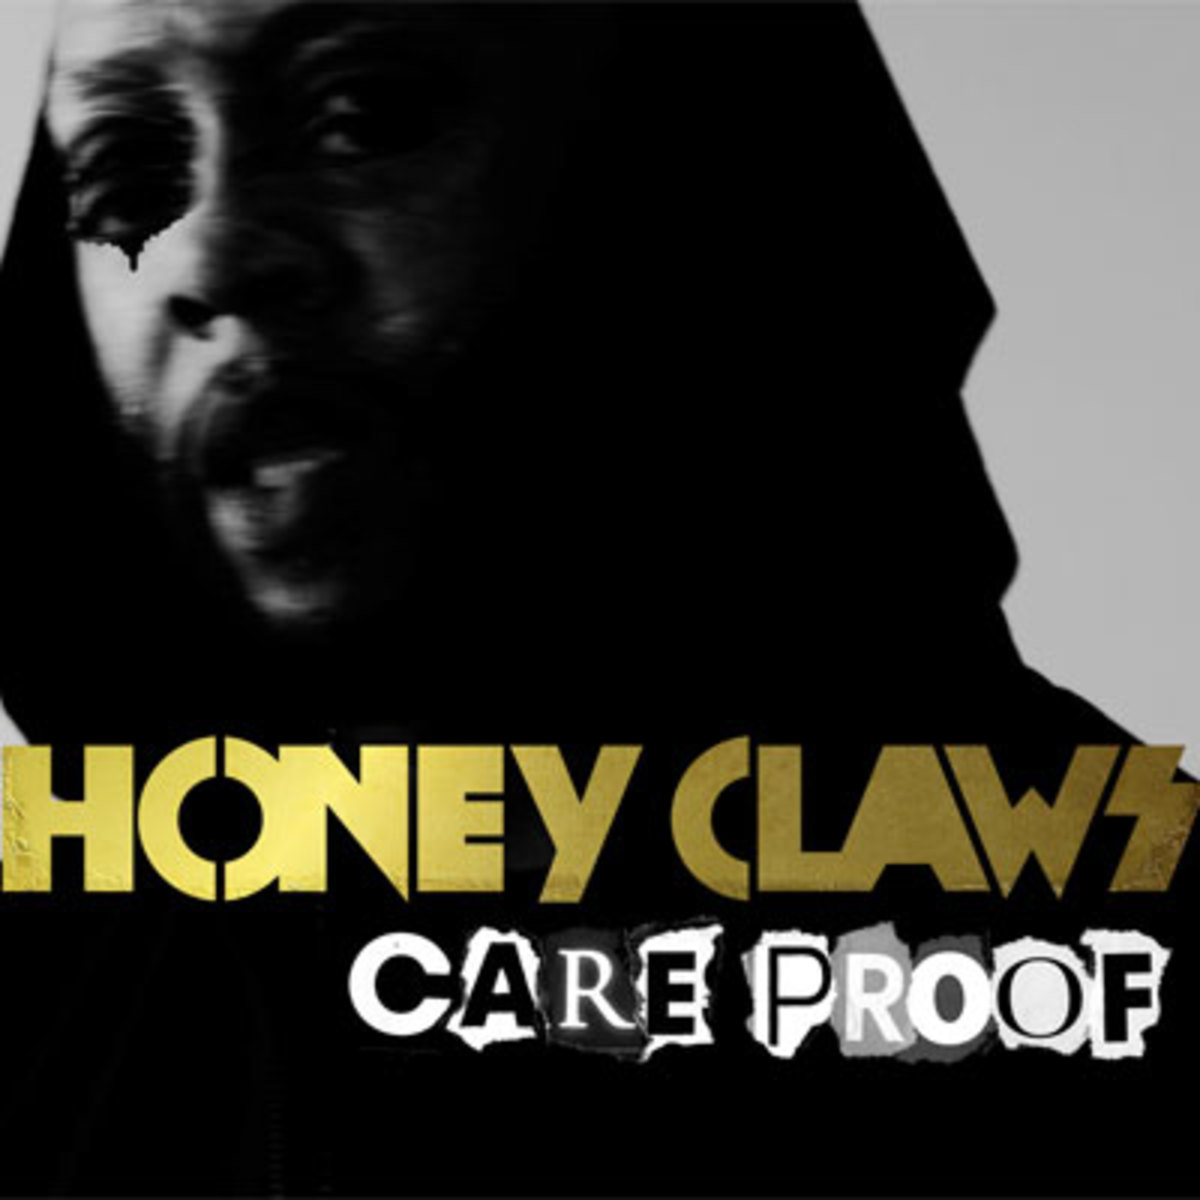 honeyclaws-careproof.jpg